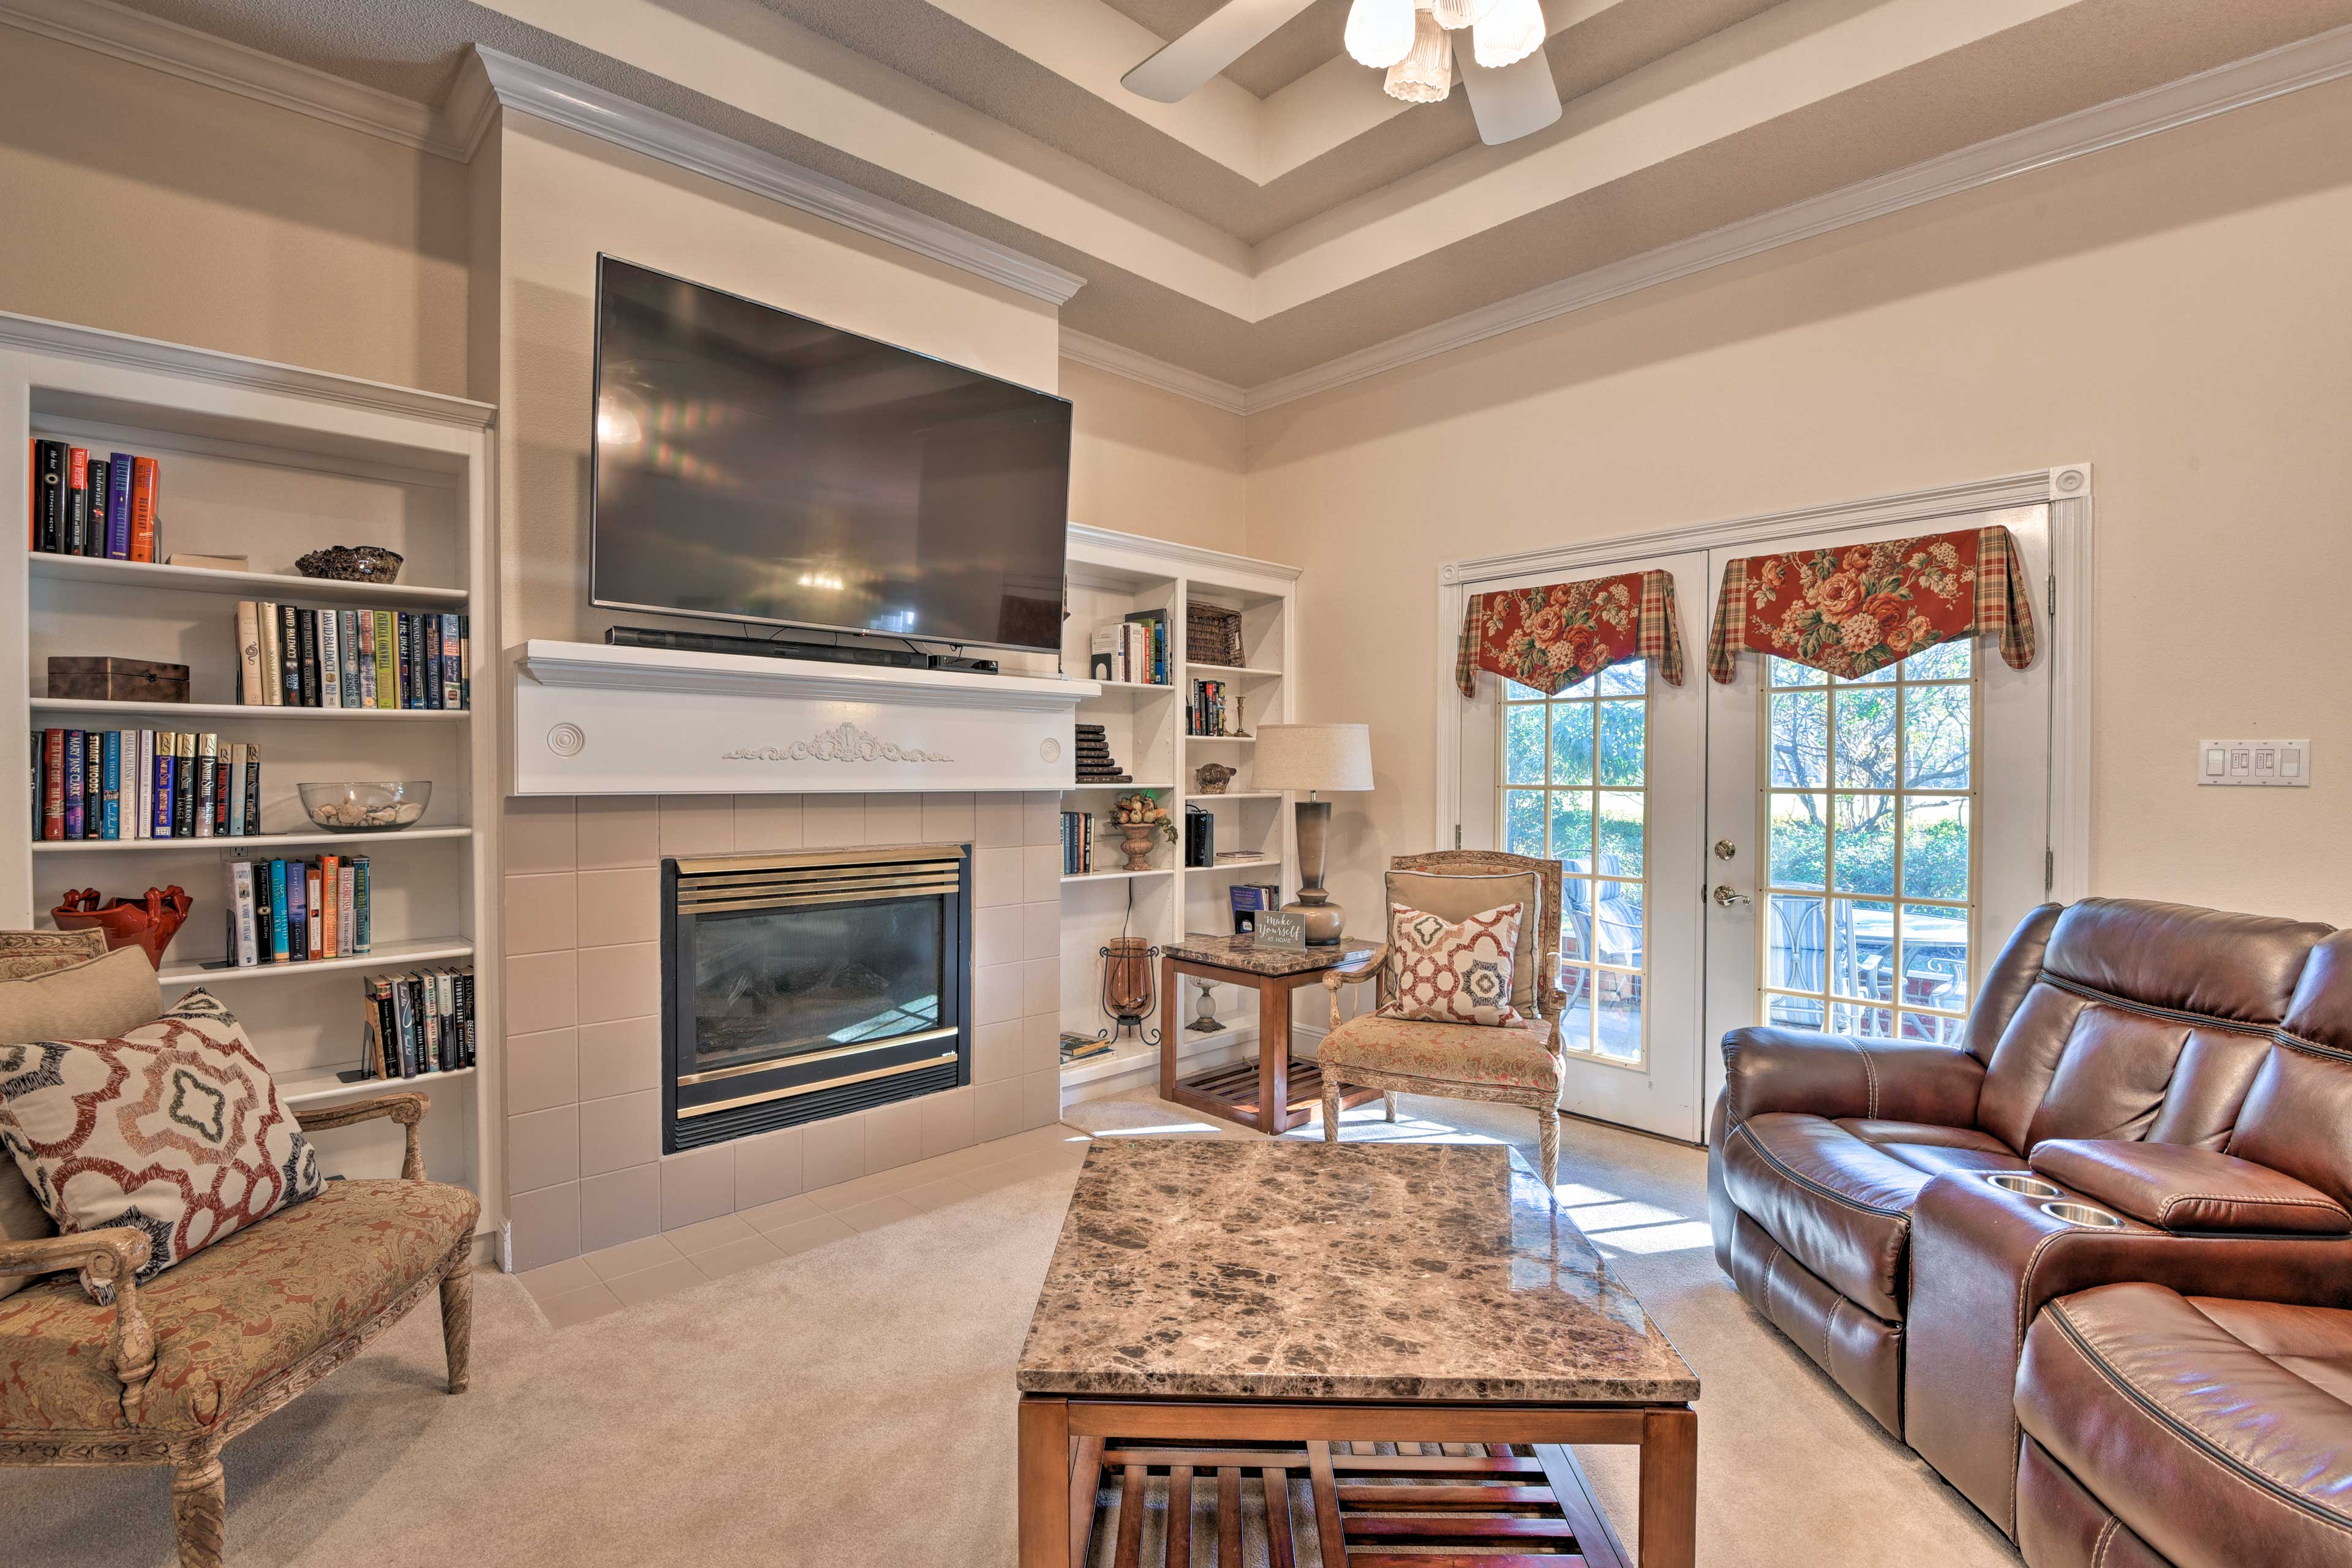 This home is ideal for a group of up to 7 guests.